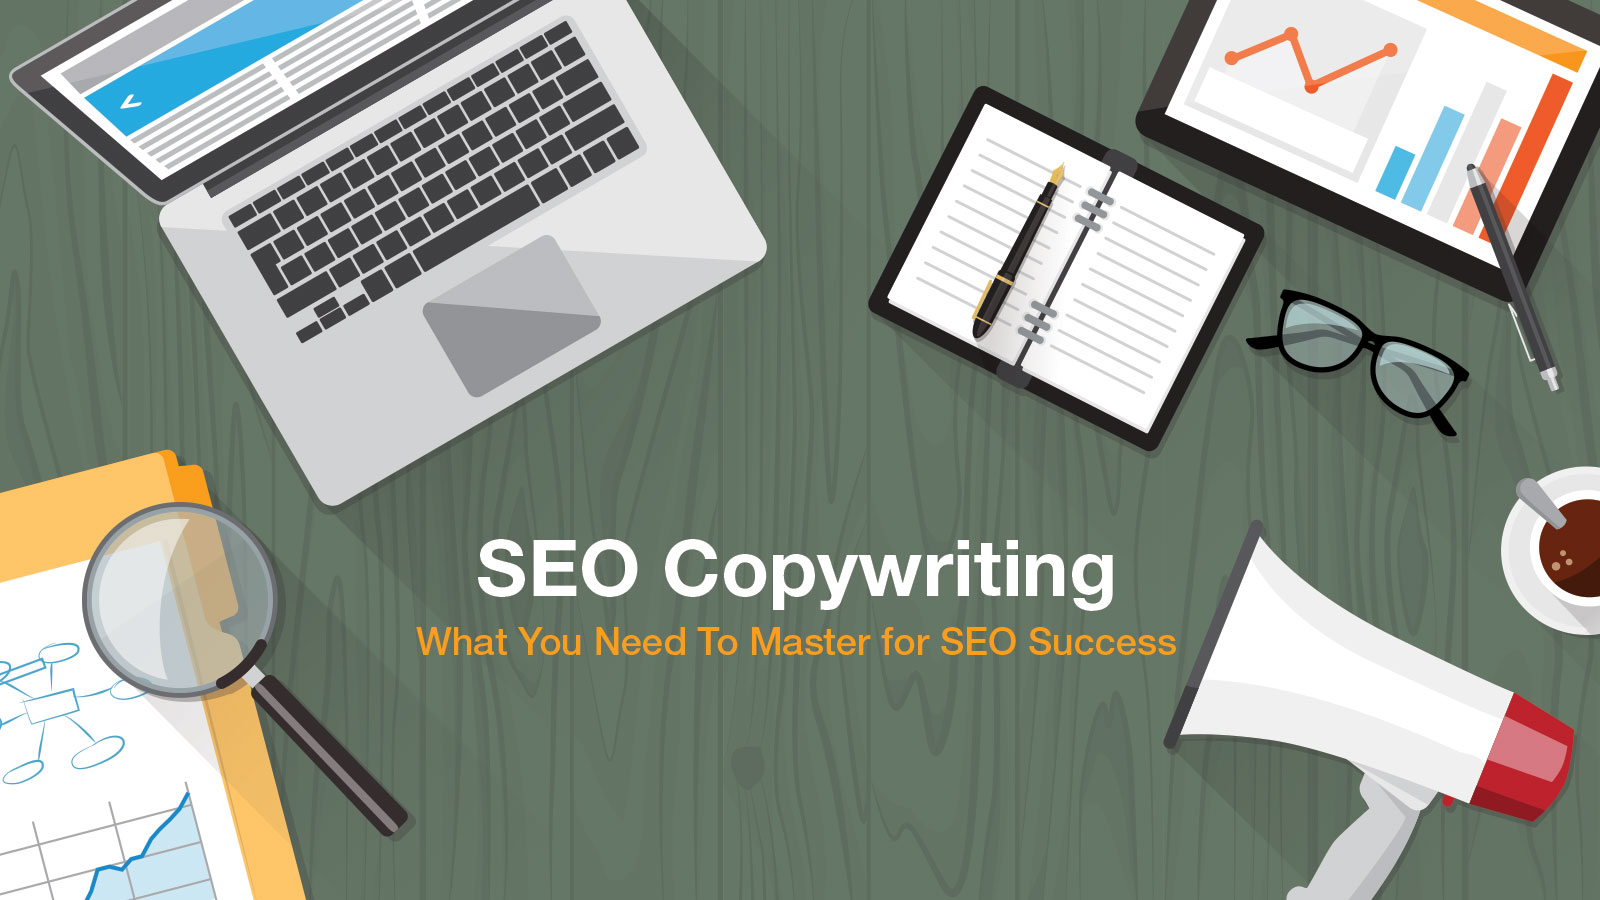 Seo Copywriting: How to Write for Search Engine Optimization